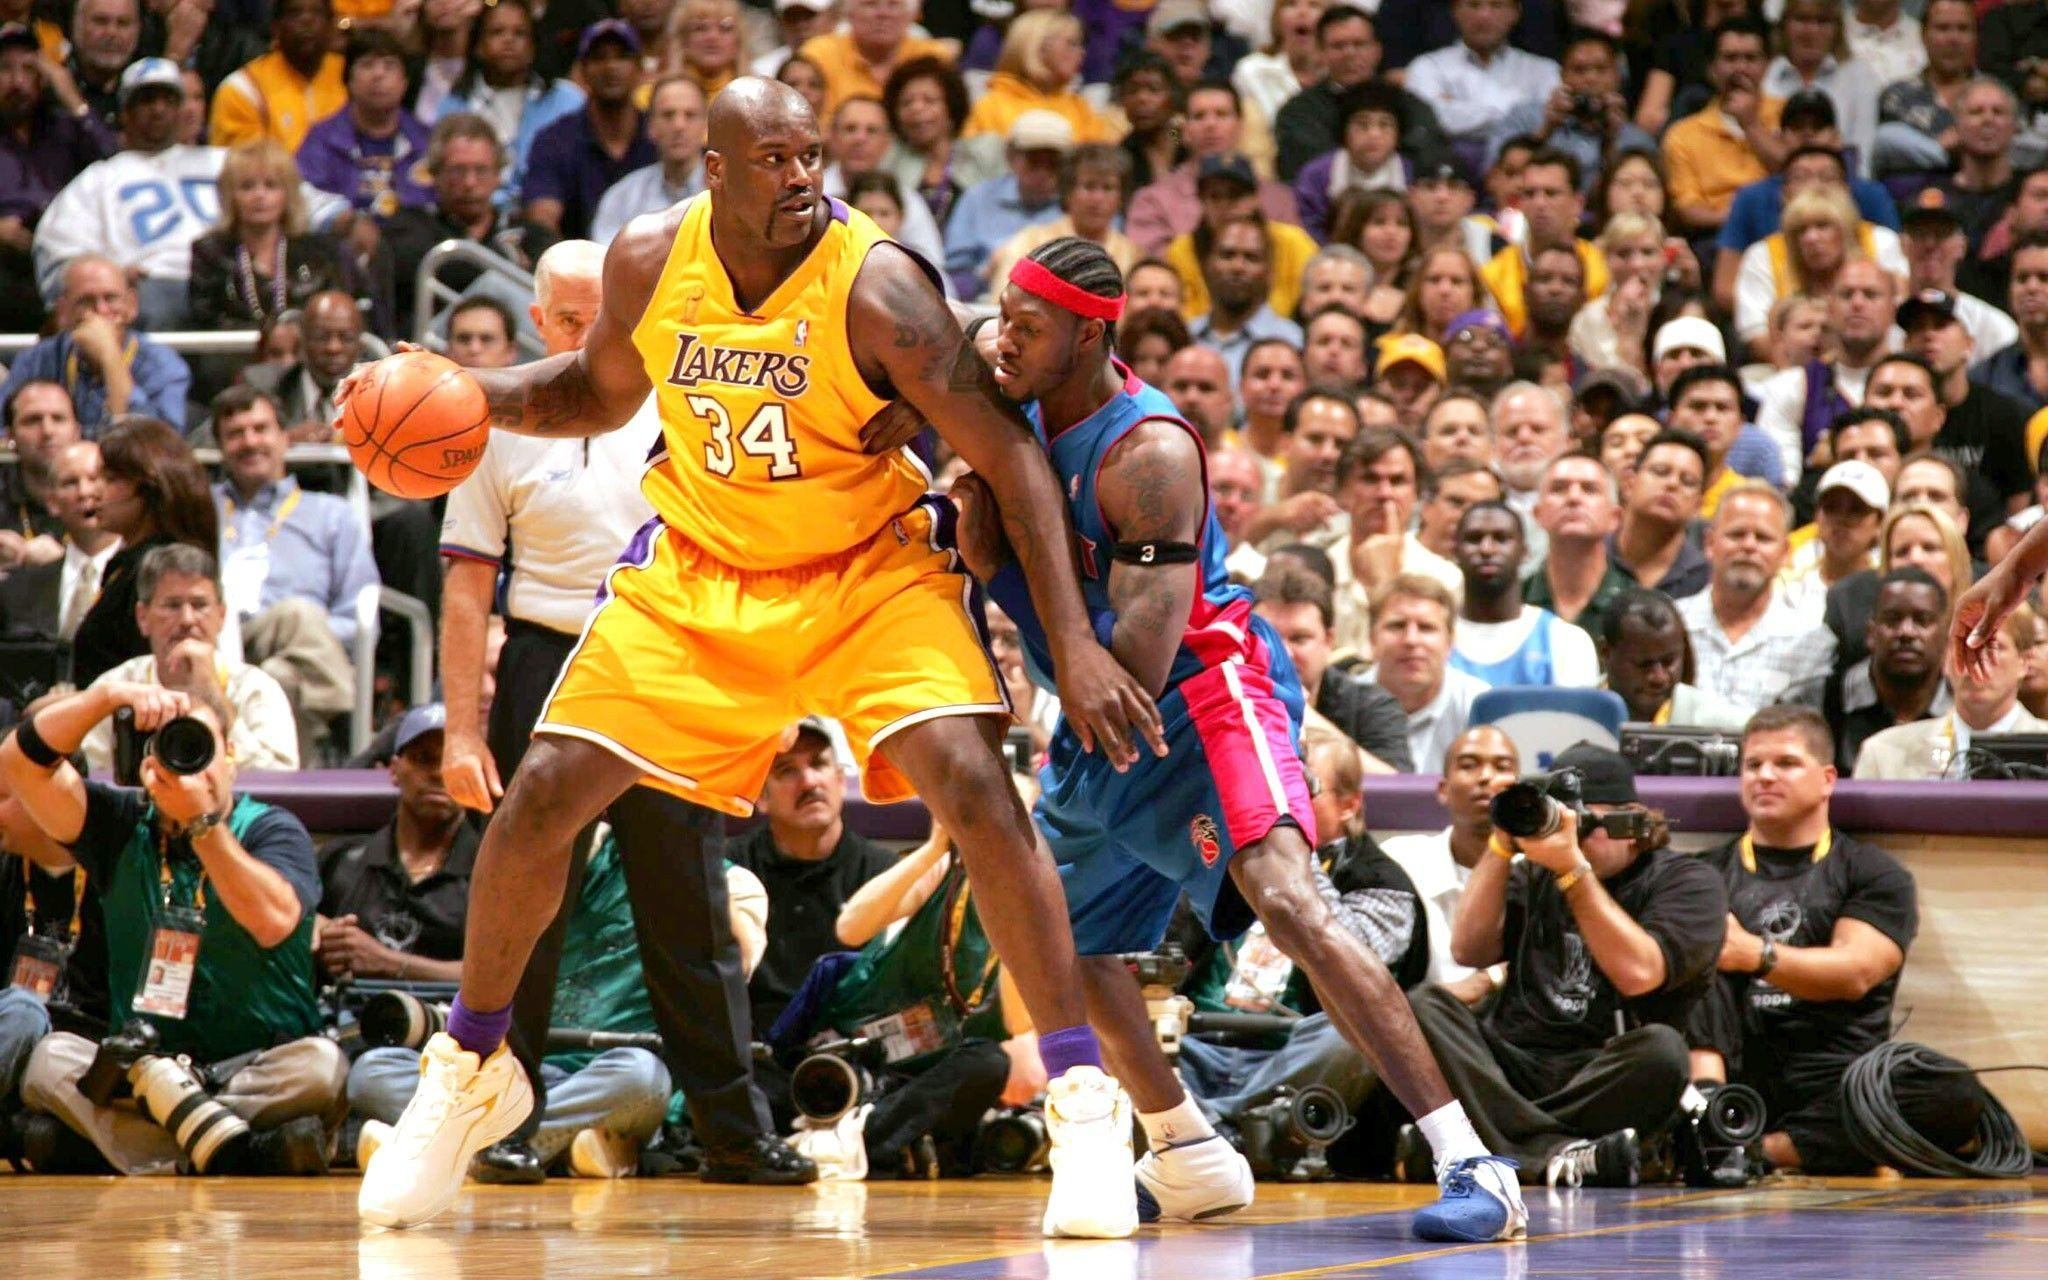 NBA, Basketball, Shaquille O'Neal Wallpapers HD / Desktop and